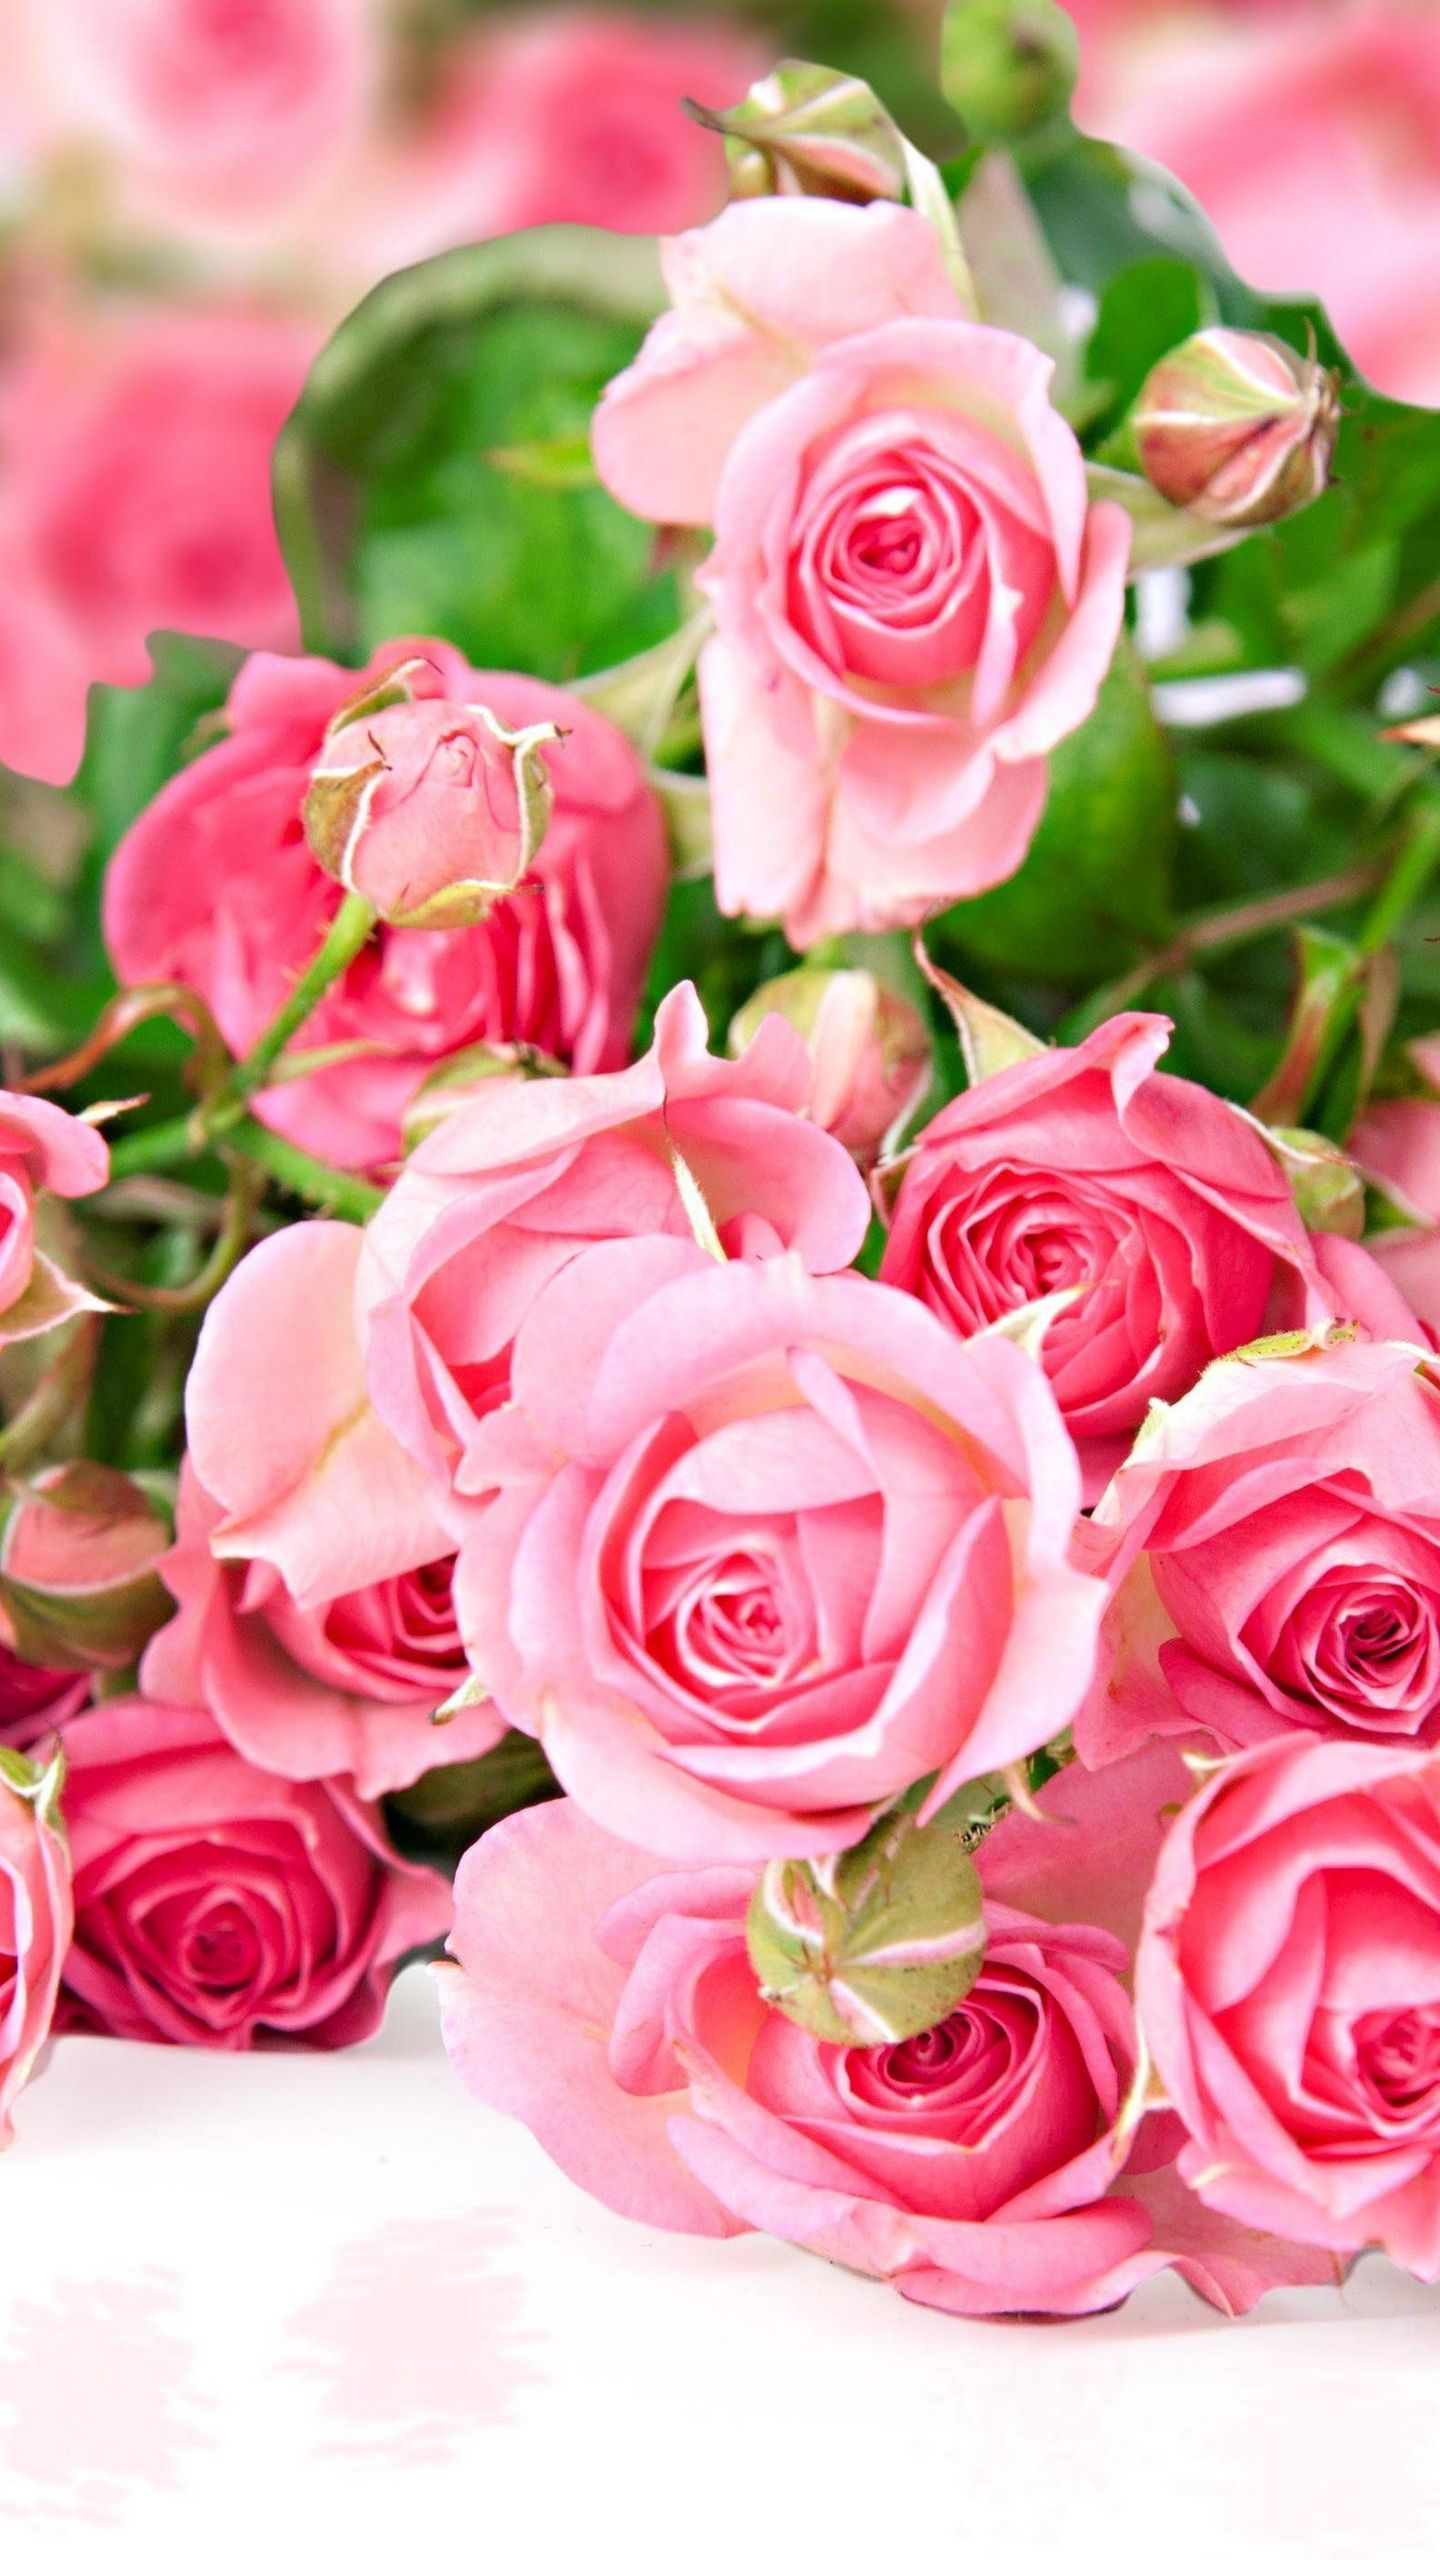 See my collection of lovely iPhone and android rose